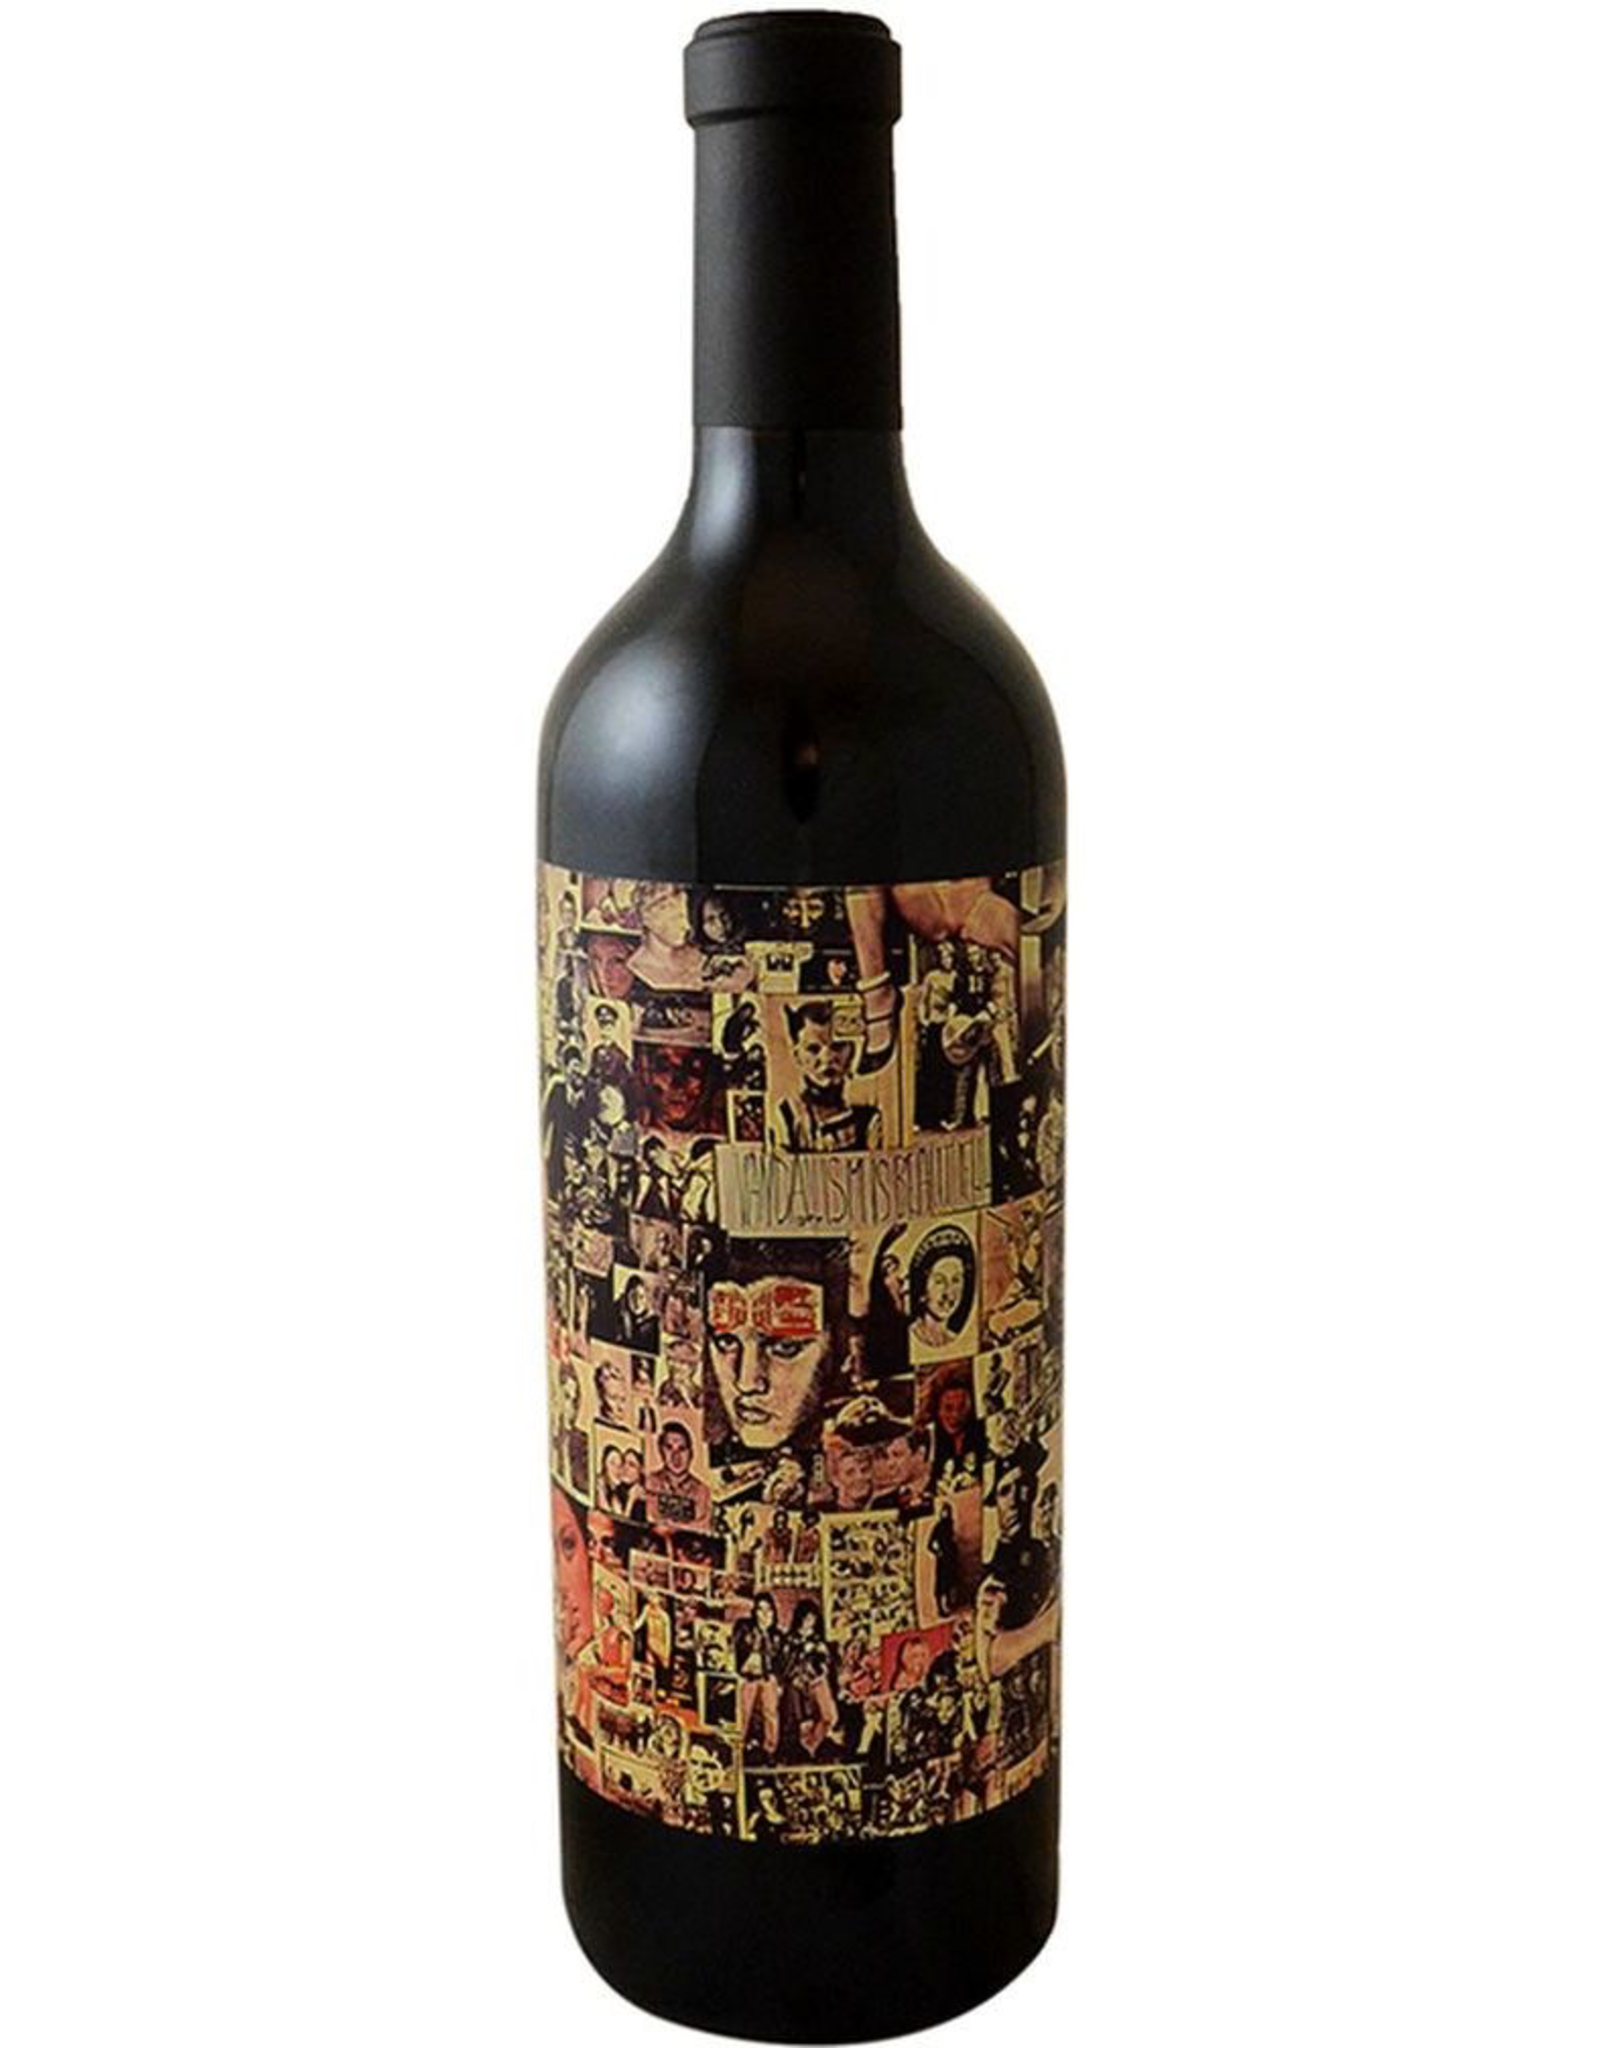 Red Wine 2018, Orin Swift Abstract, Red Rhone Blend, Multi-regional Blend, Napa Valley, California, 15.1% Alc, CT90